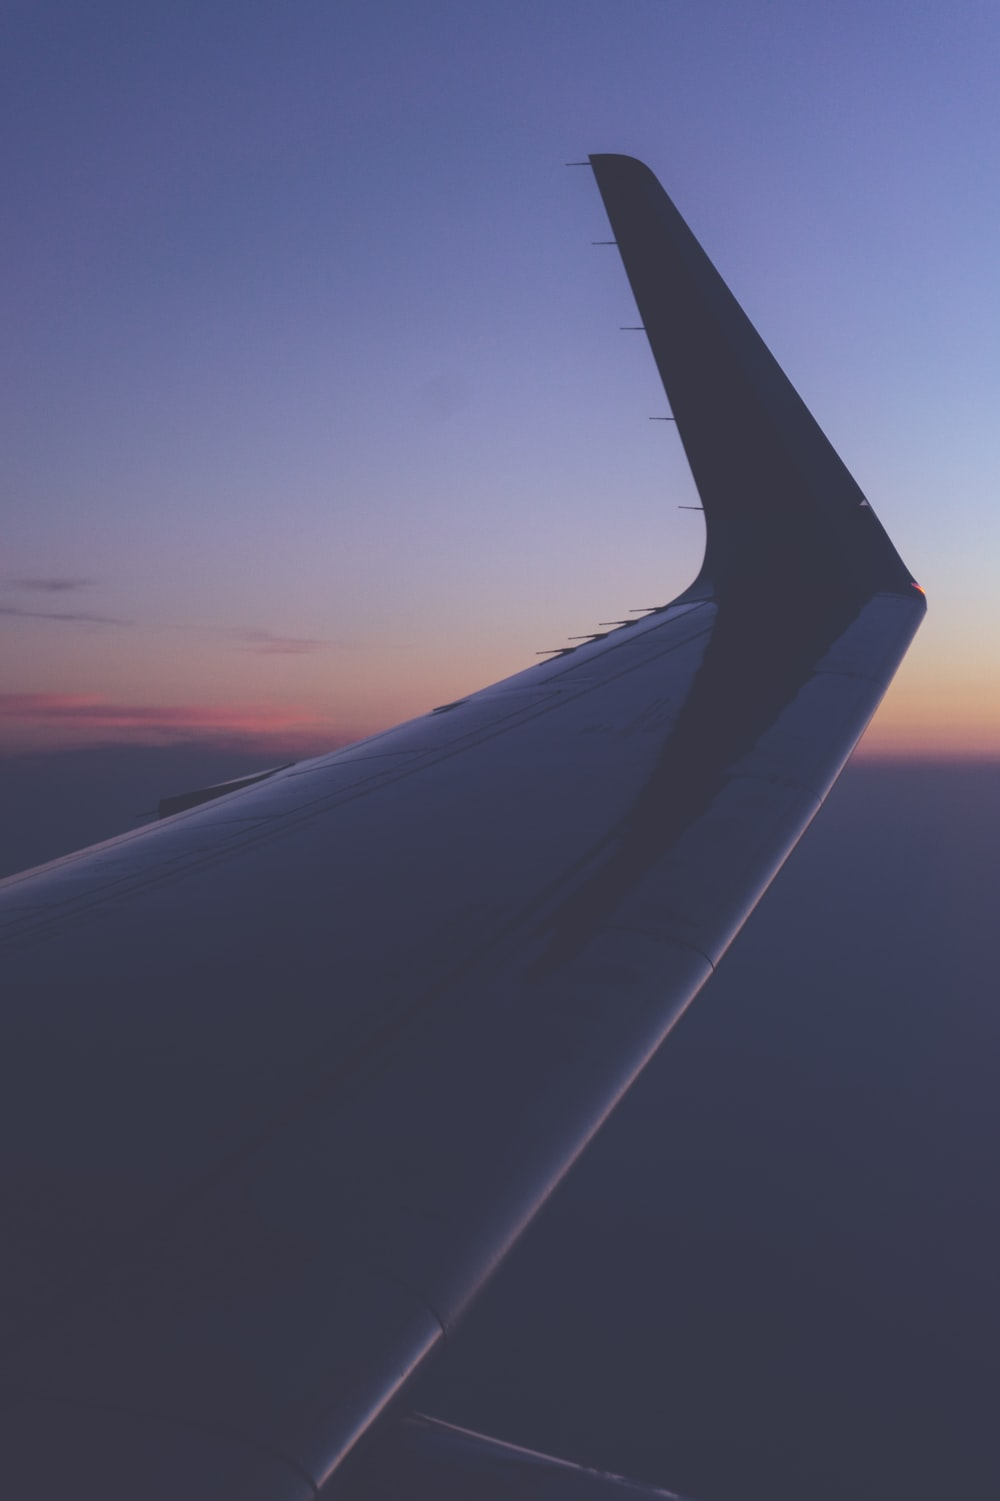 closeup photography on airplane wing at golden hour